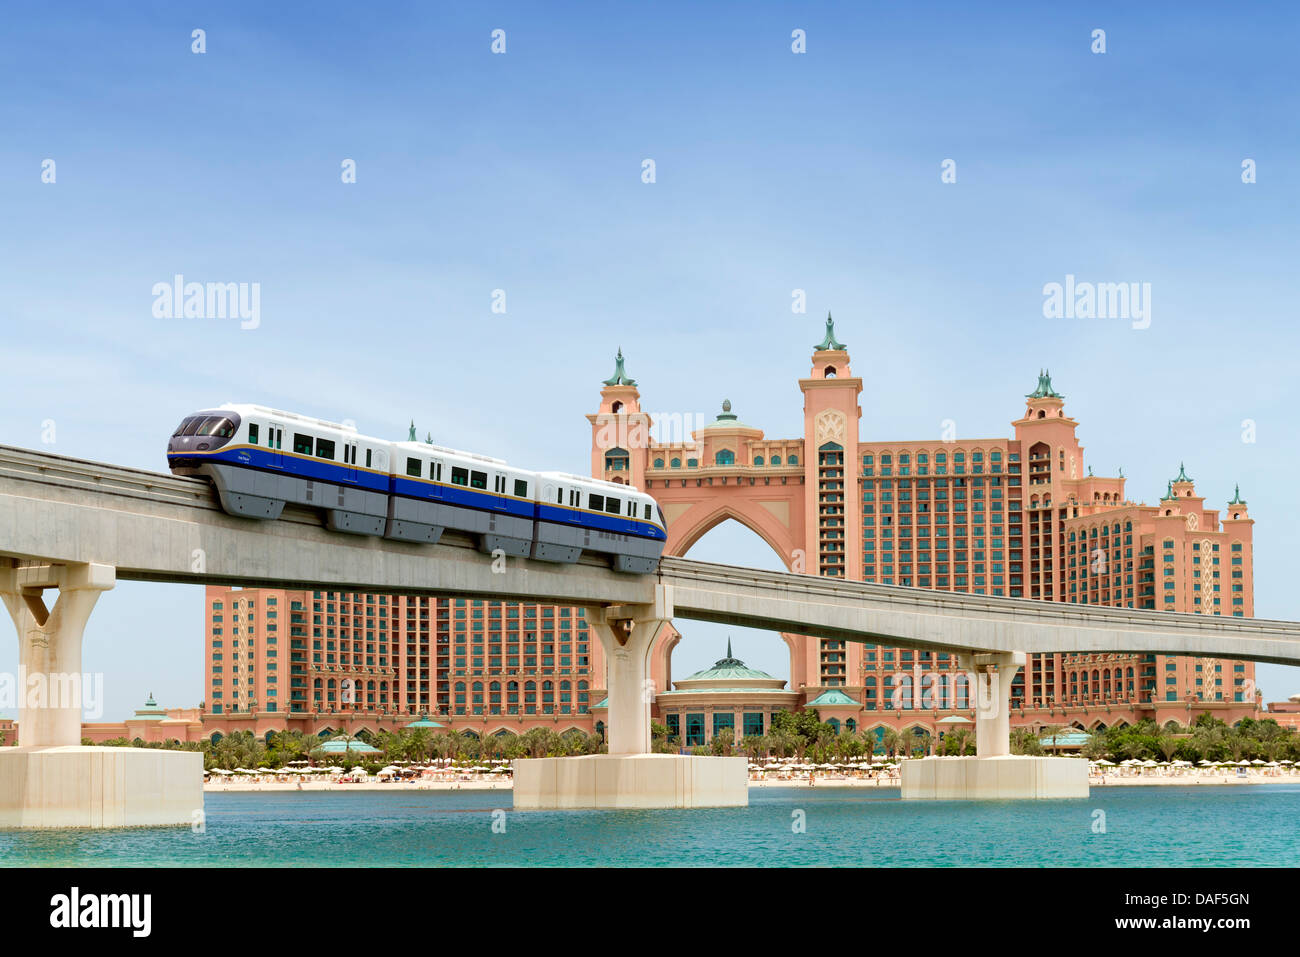 Monorail train approaching the palm atlantis luxury hotel for Best hotels dubai palm